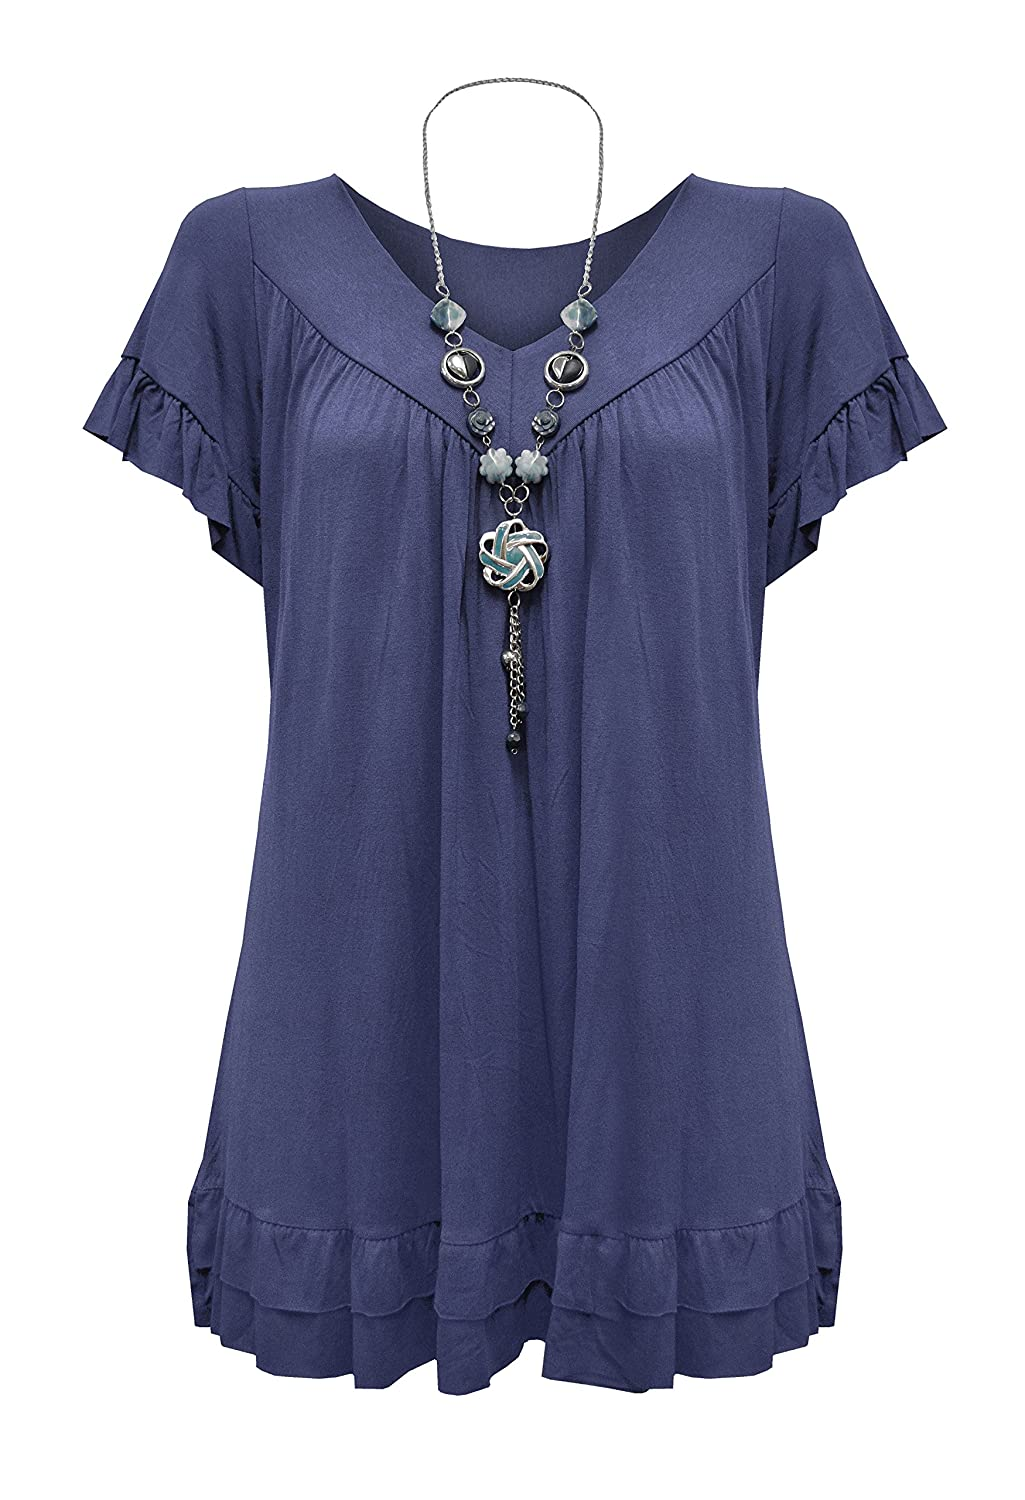 Womens Plus Size Frill Necklace Gypsy Tunic V Neck Top US 8-26